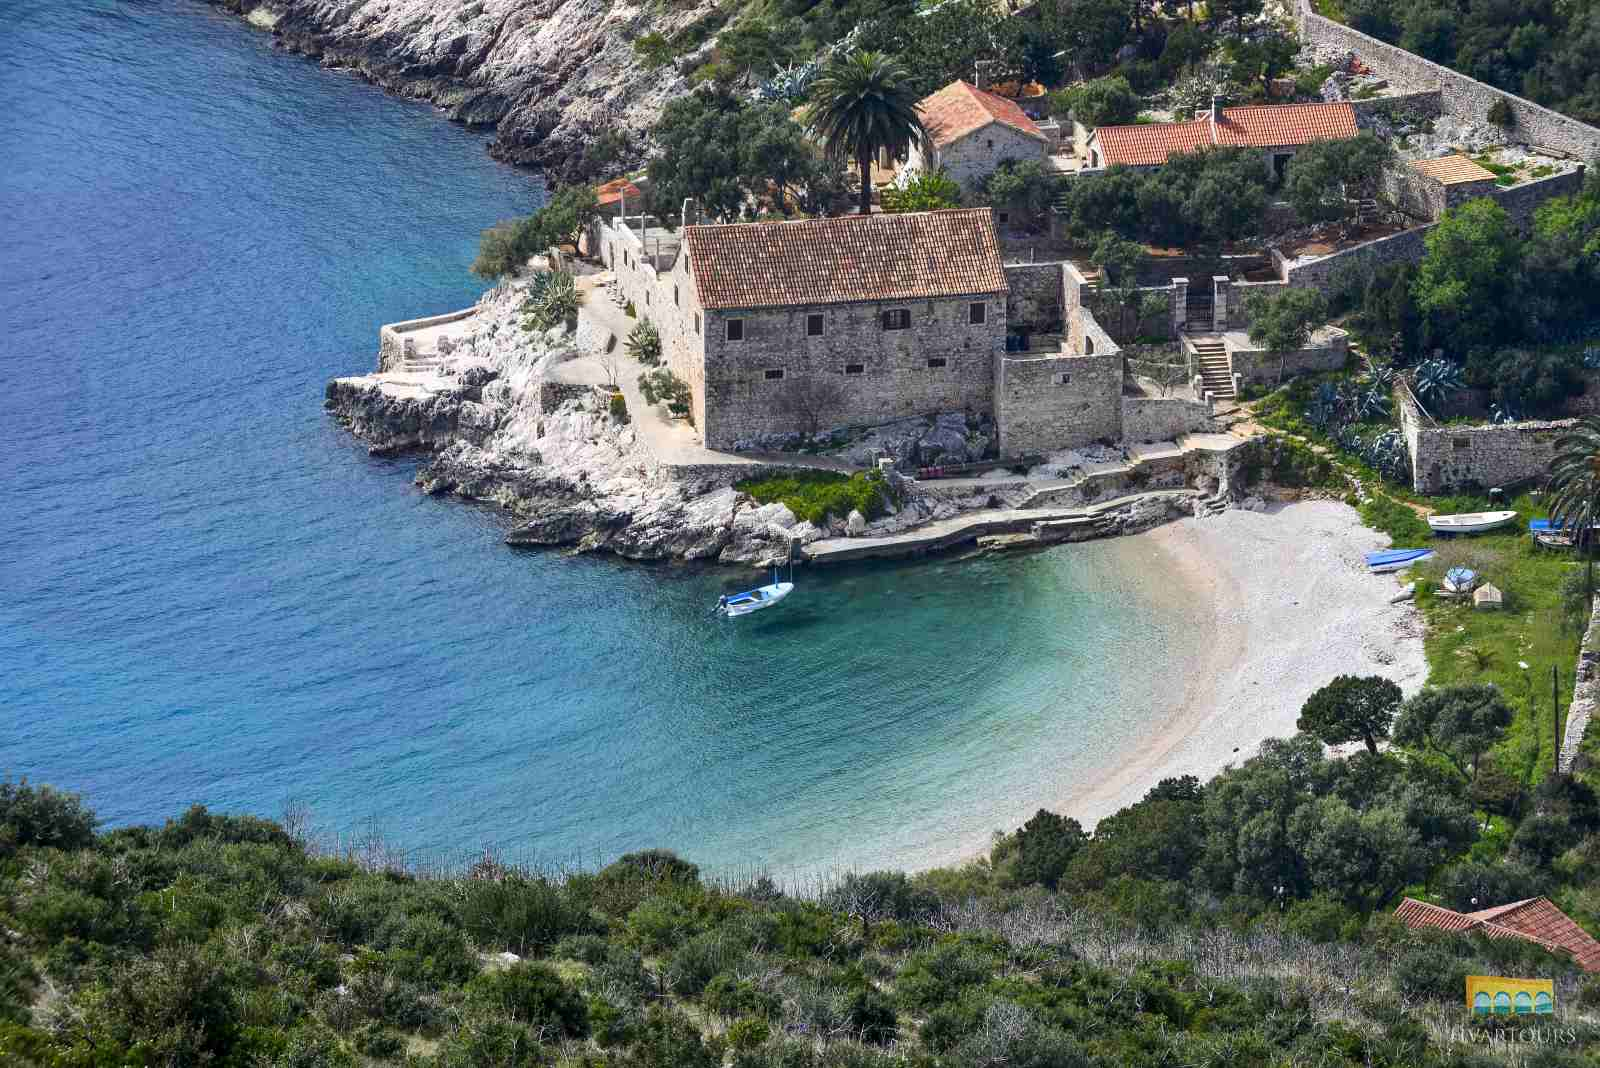 Escape to the hidden lagoons and cliffs of Hvar's south shore